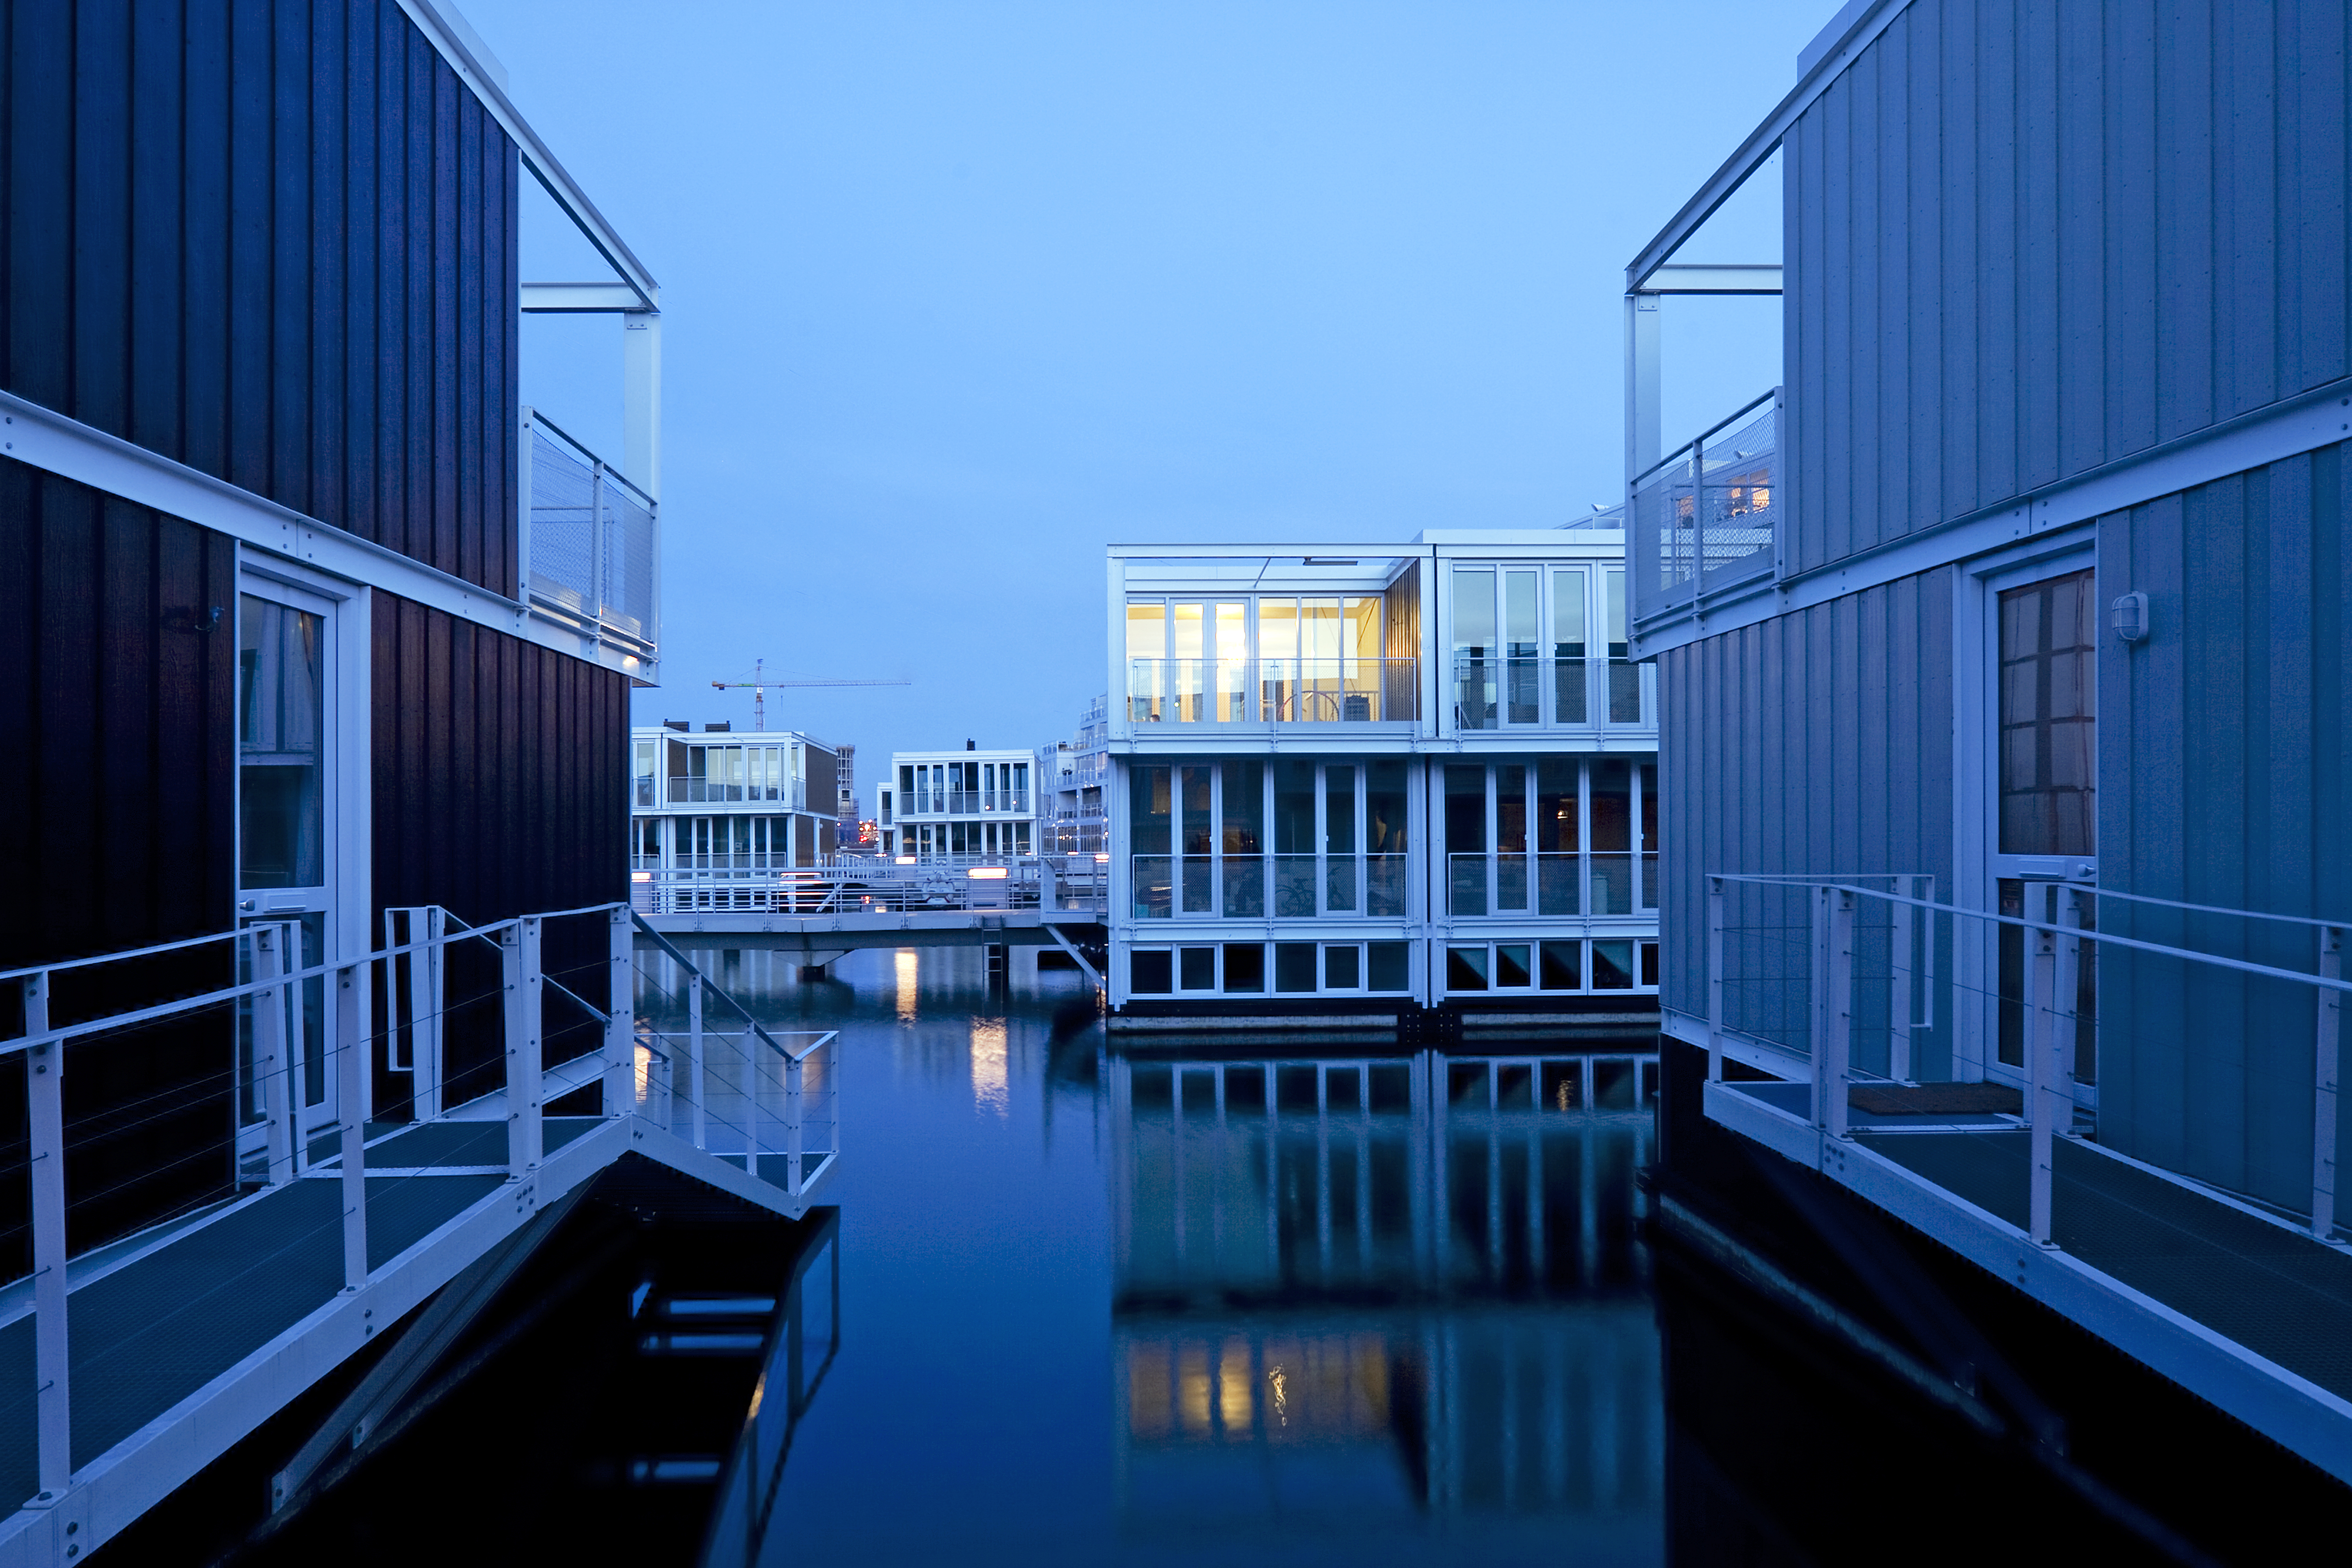 Fifty-five homes float in the IJburg district in east Amsterdam. The structures, designed by  the Dutch firm Marlies Rohmer Architects, sit on hollow concrete  tubs  that are submerged half a story.